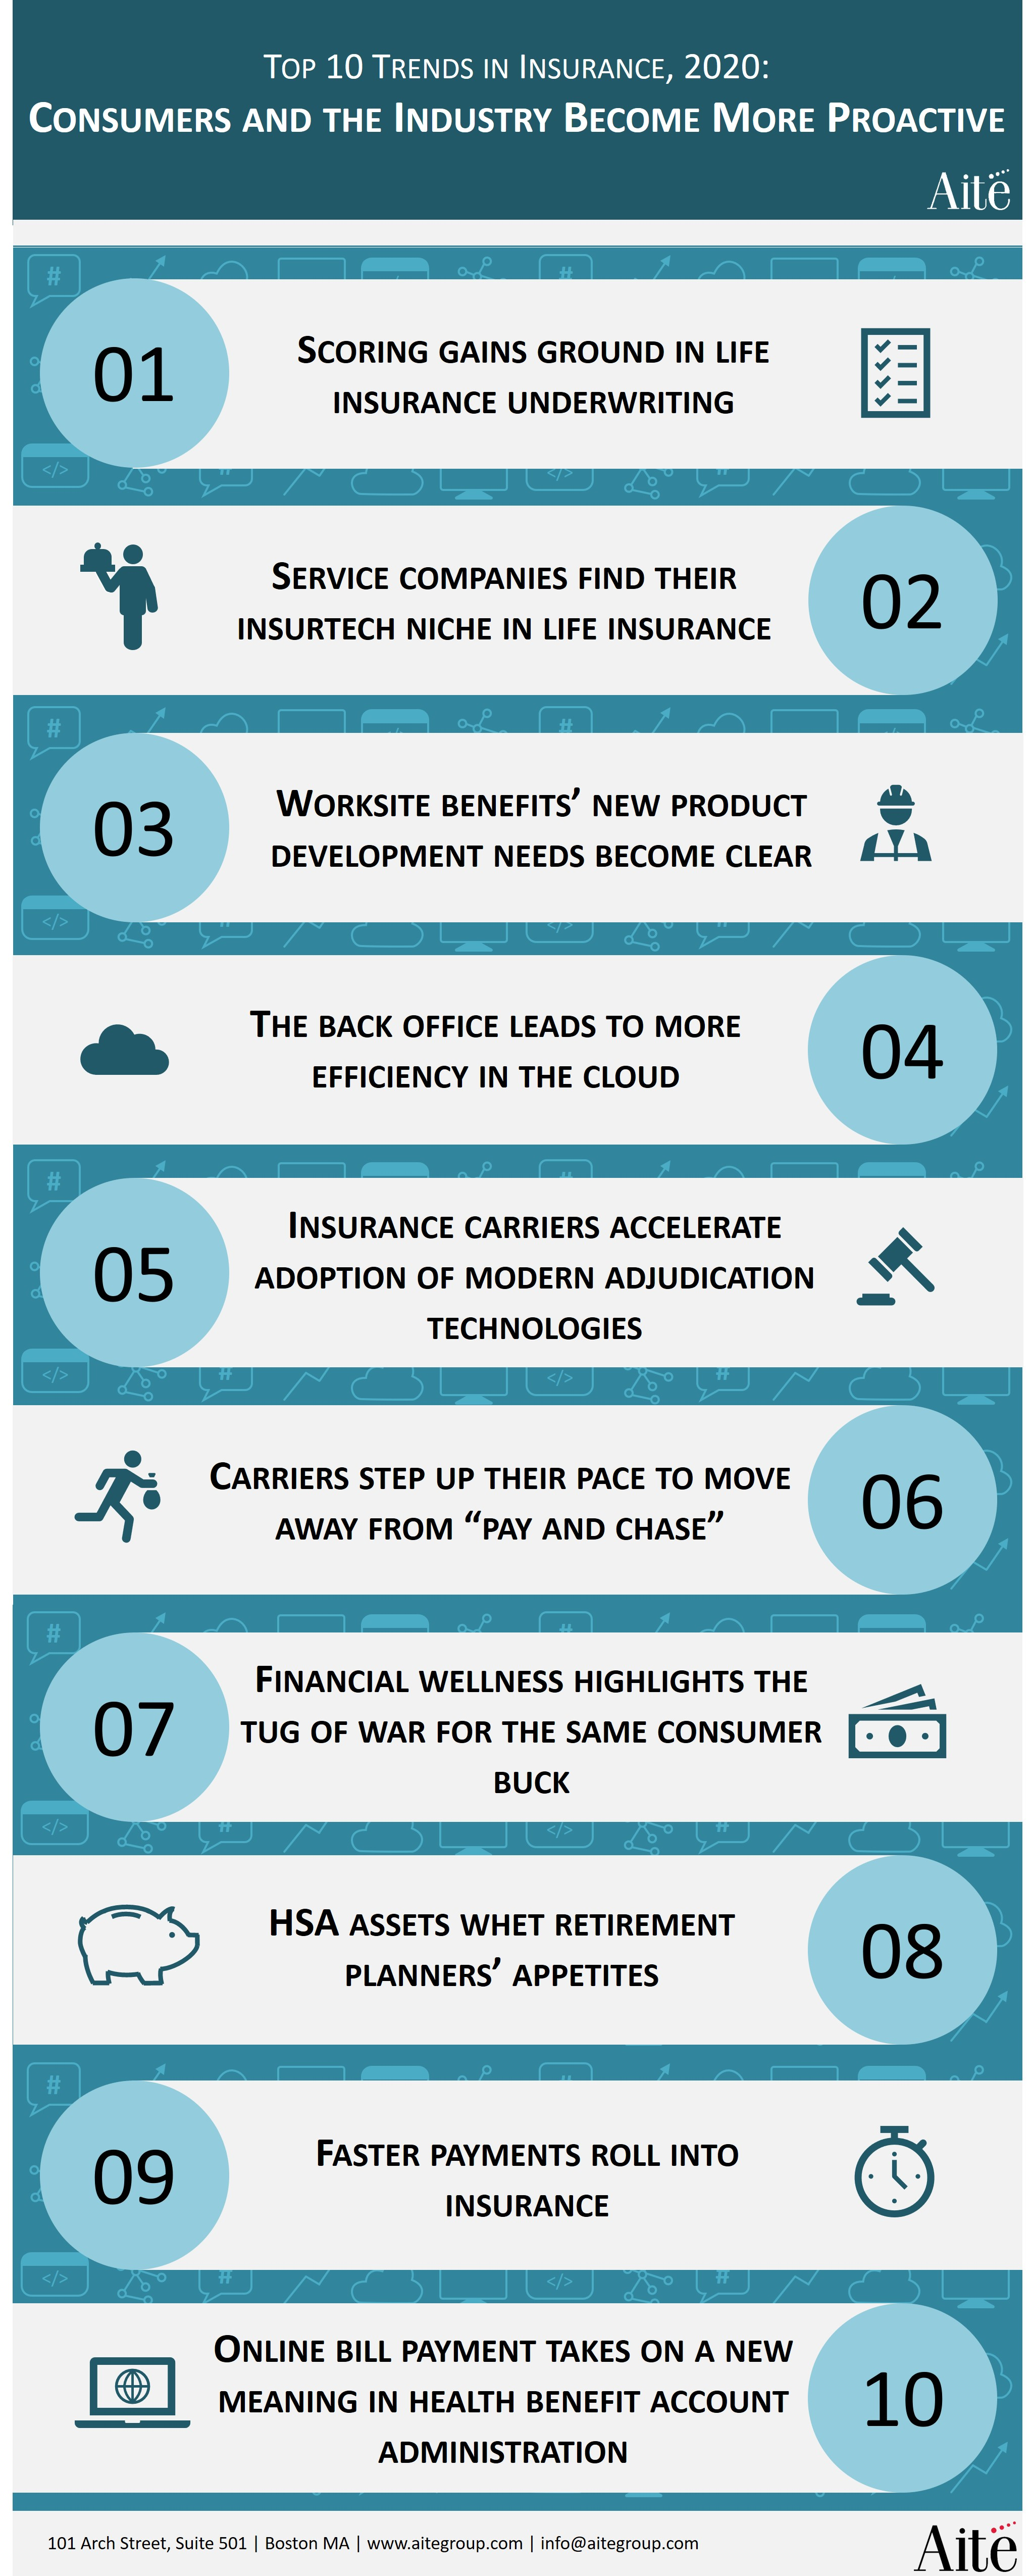 Top 10 Trends in Insurance, 2020: Consumers and the Industry Become More Proactive | Aite Group